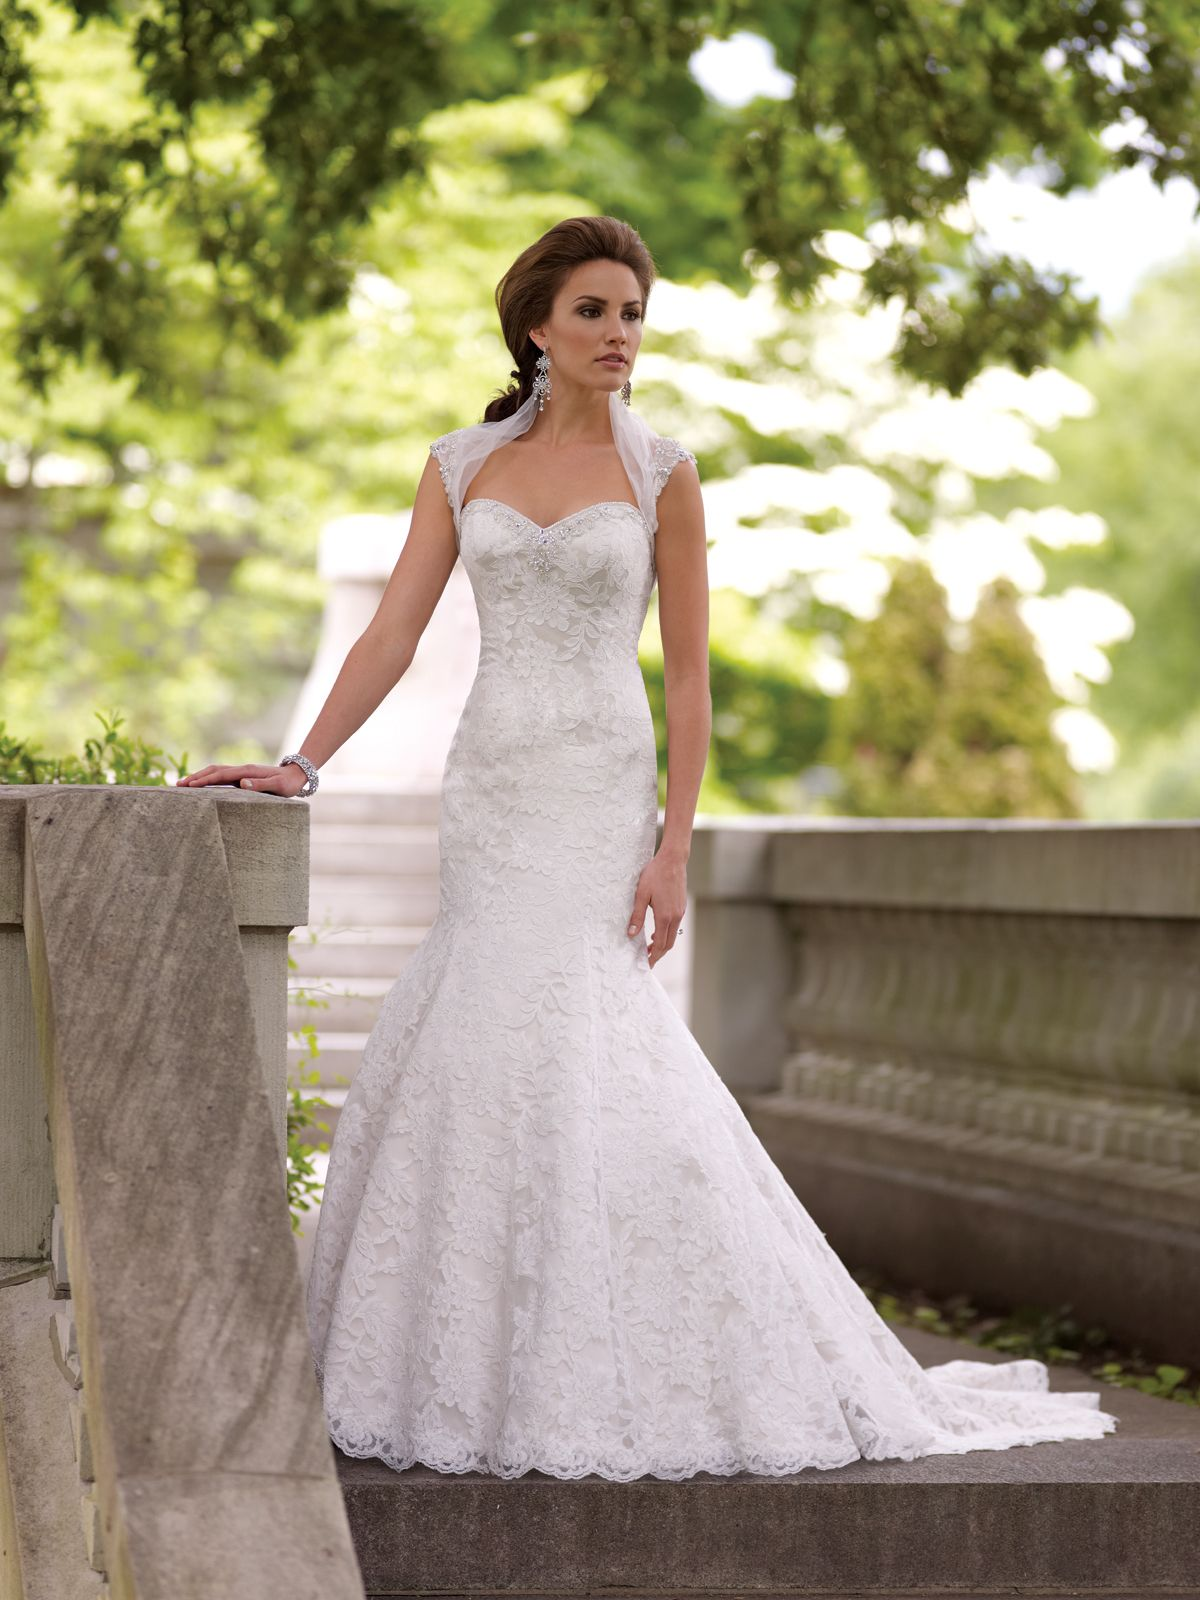 Style no david tutera for mon cheri is in stock now at bri